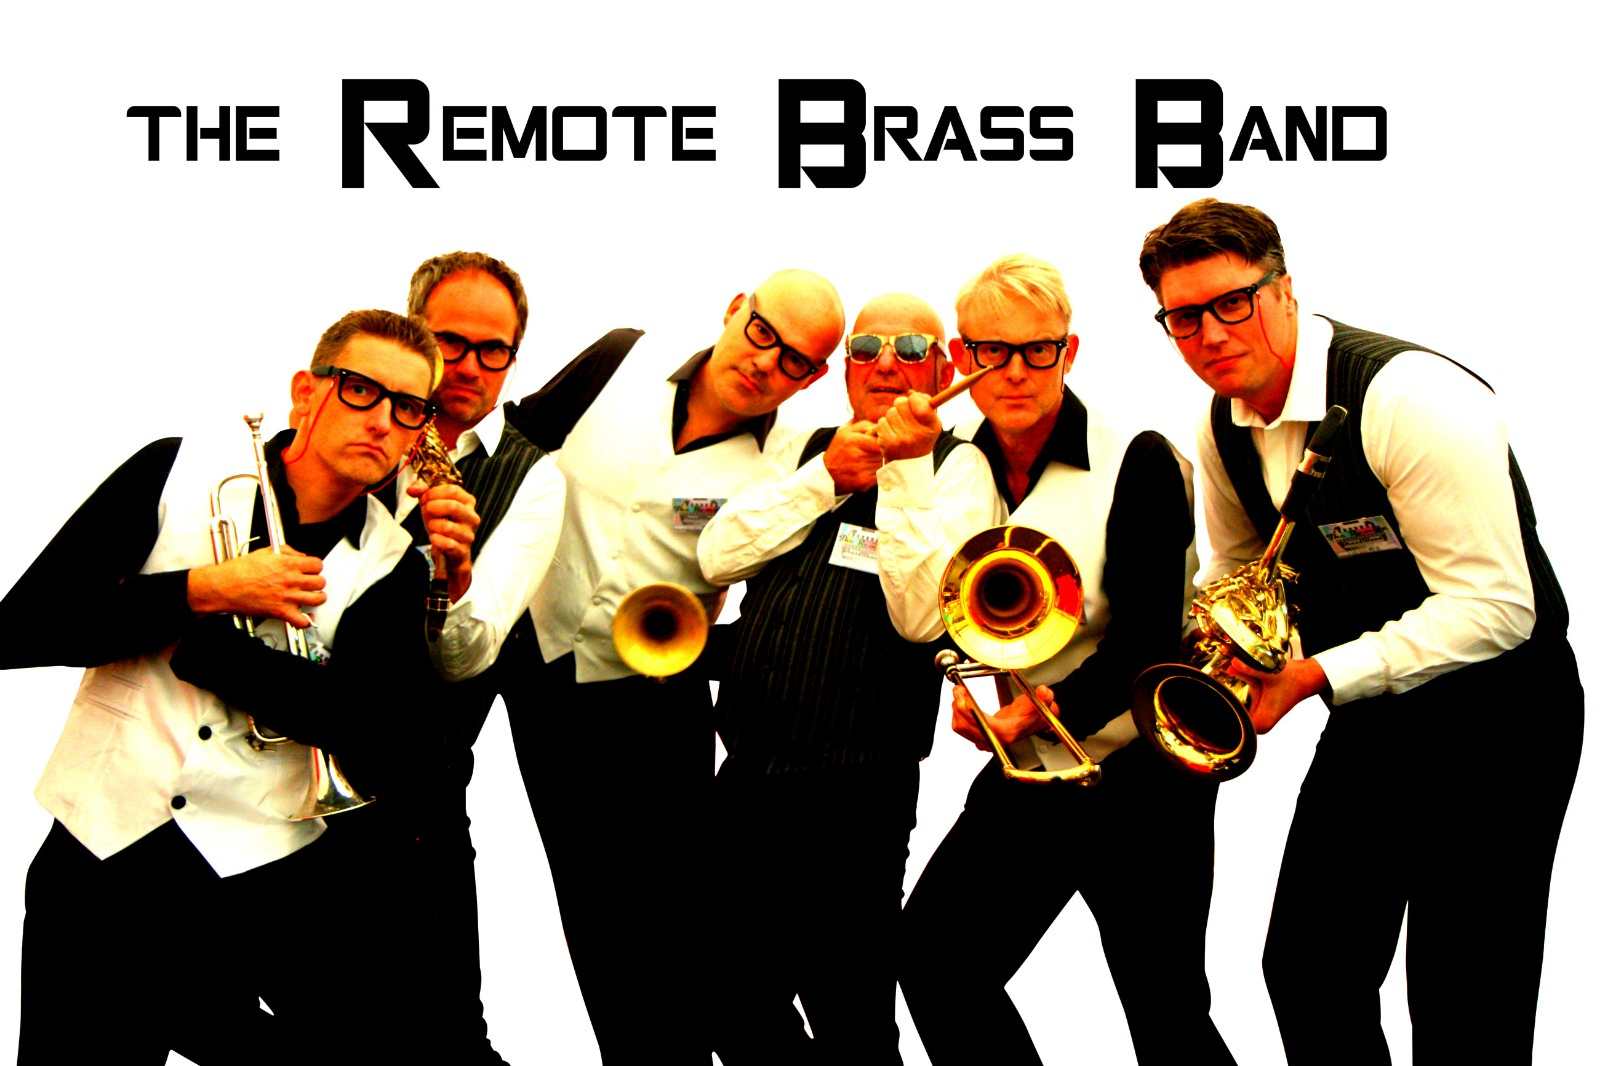 the Remote Brass Band